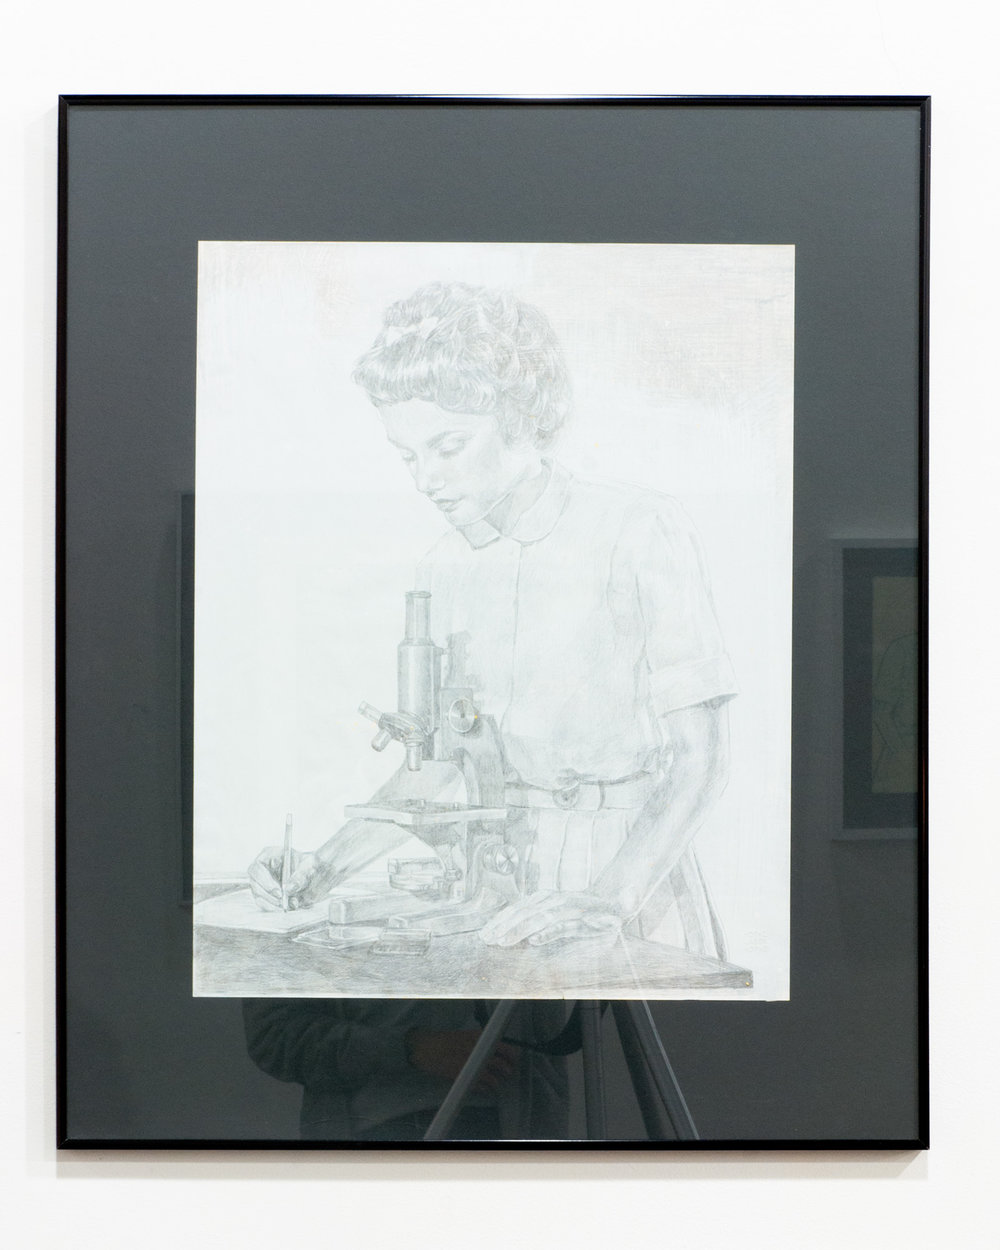 1961(Classroom I) silverpoint, ink on paper 24 x 19 inches JKO 098G